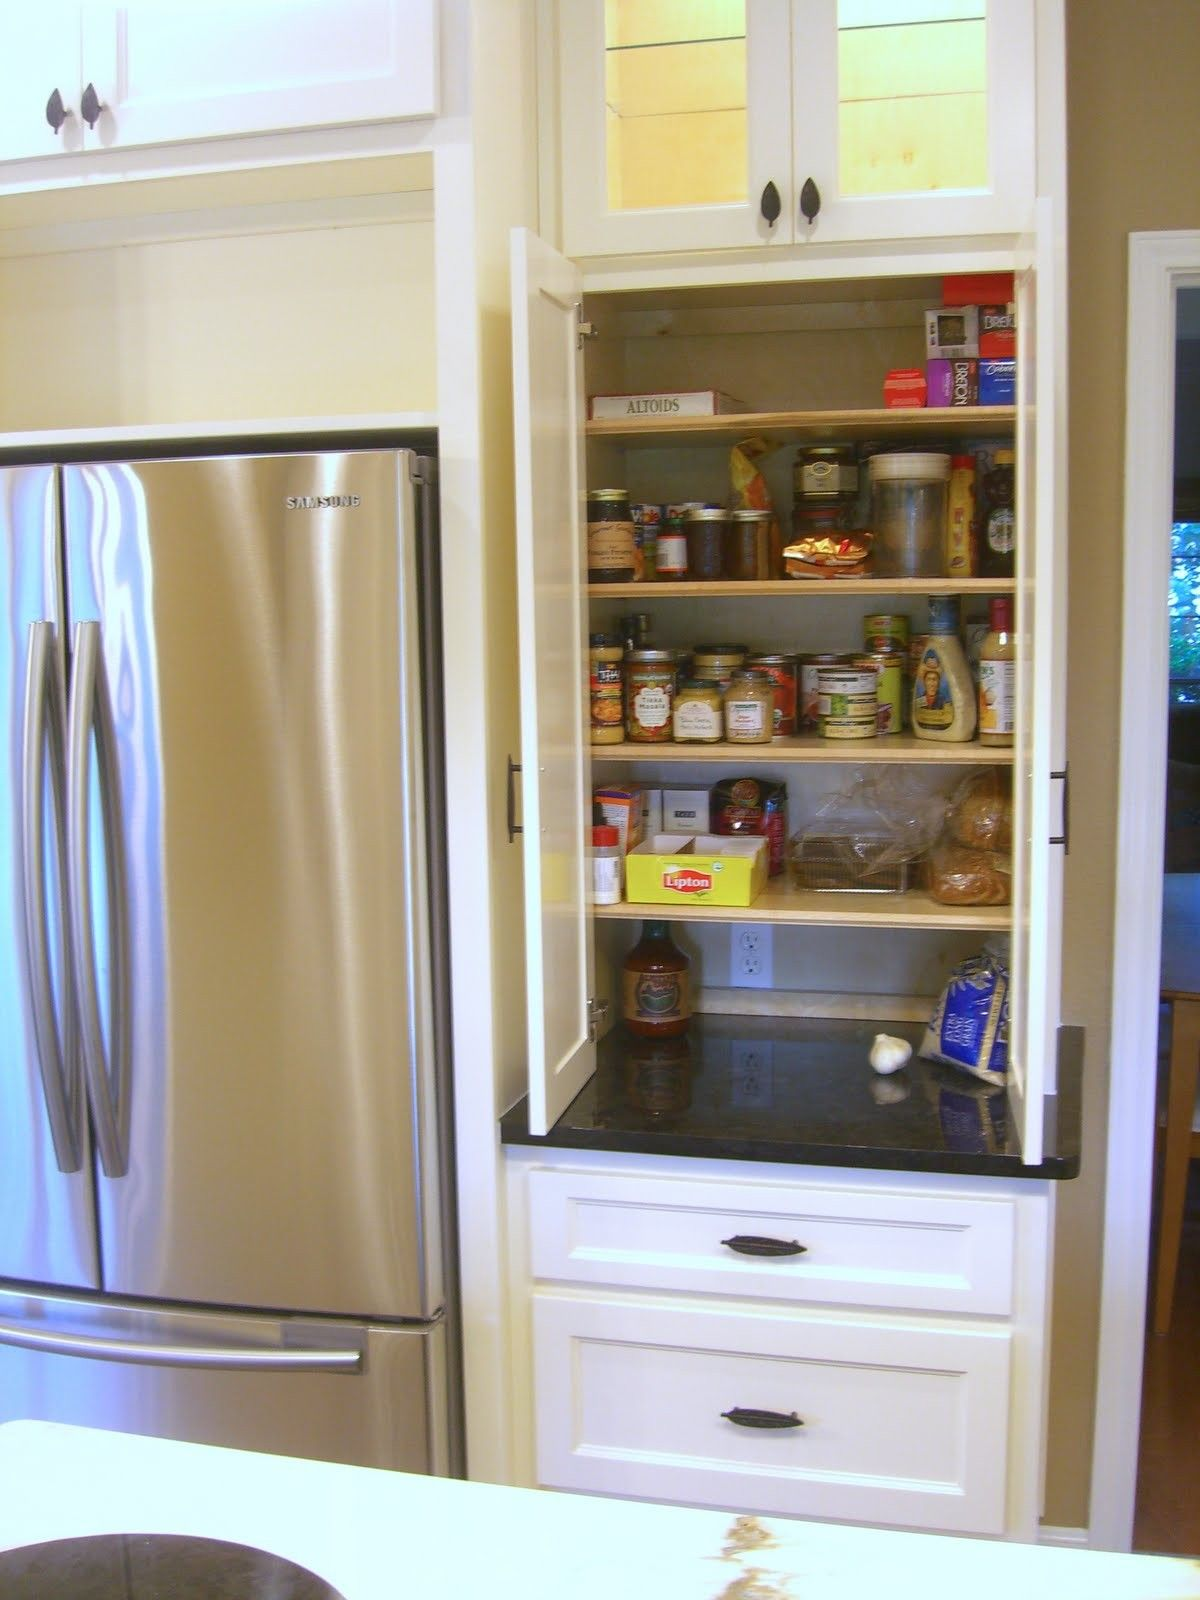 Kitchen Layout Design Tool: 7 Tips For Small Kitchen Cabinet Organization Design With